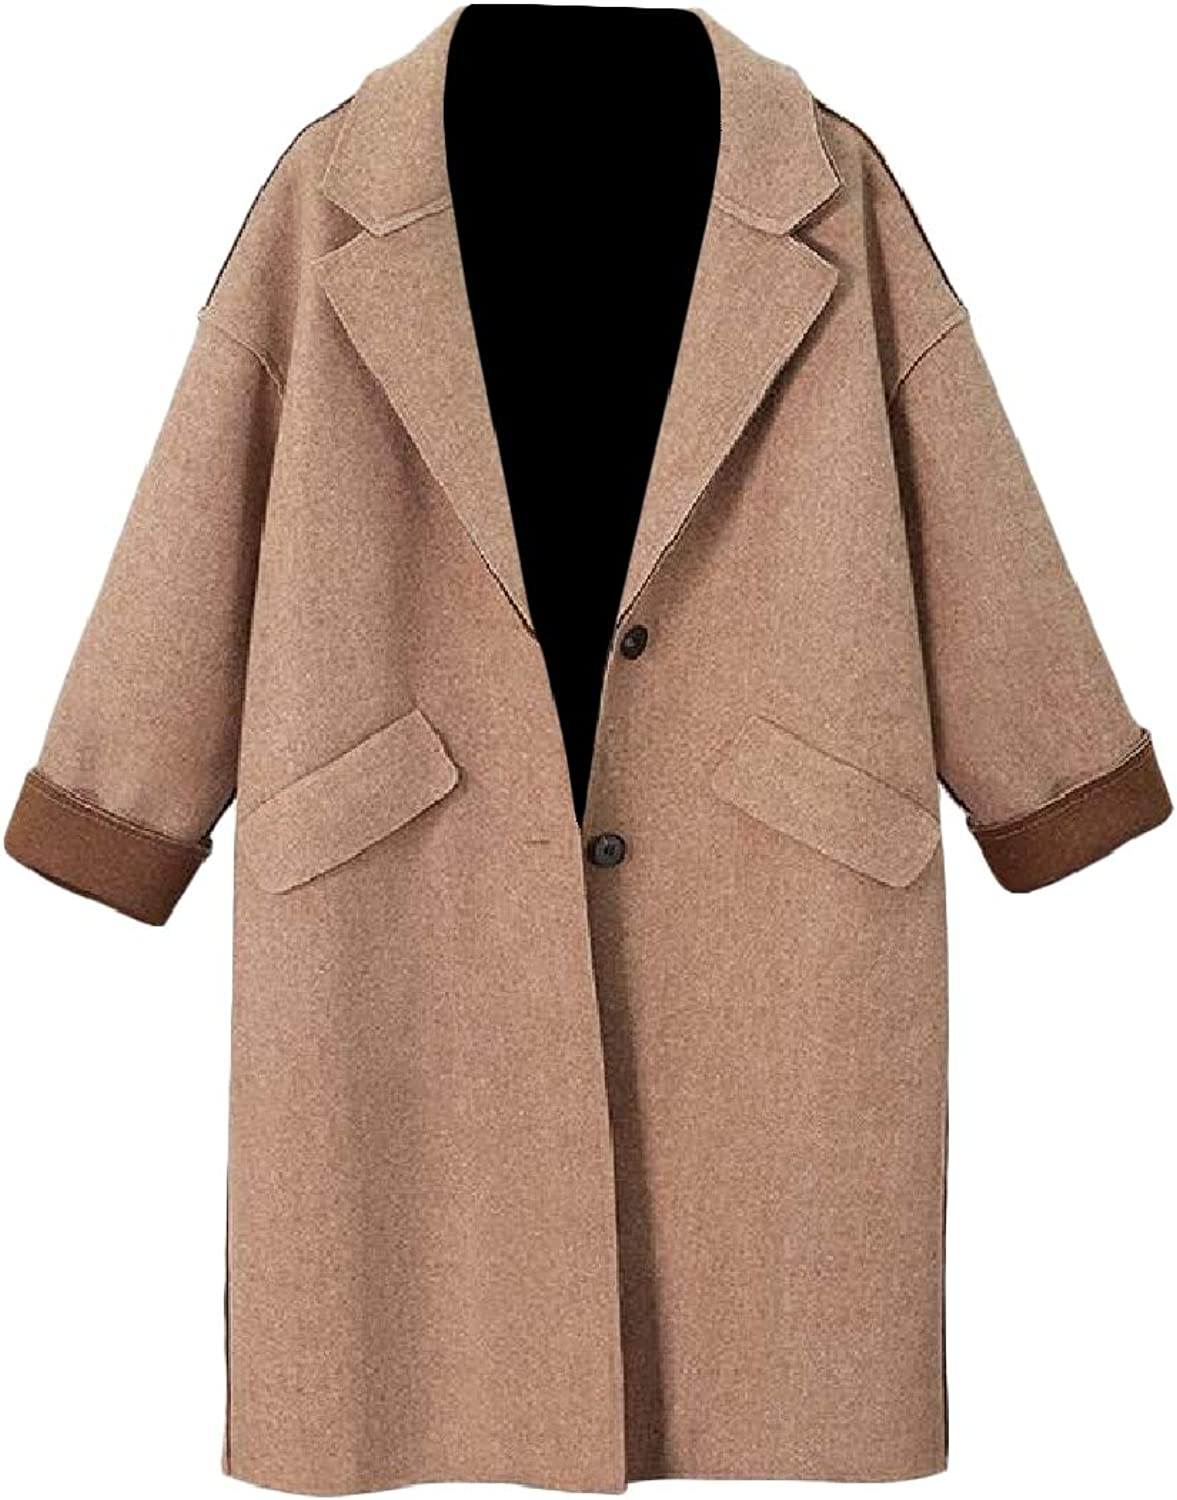 FieerWomen Fall Winter WoolBlend Thicken Lapel PlusSize Long Dust Coat